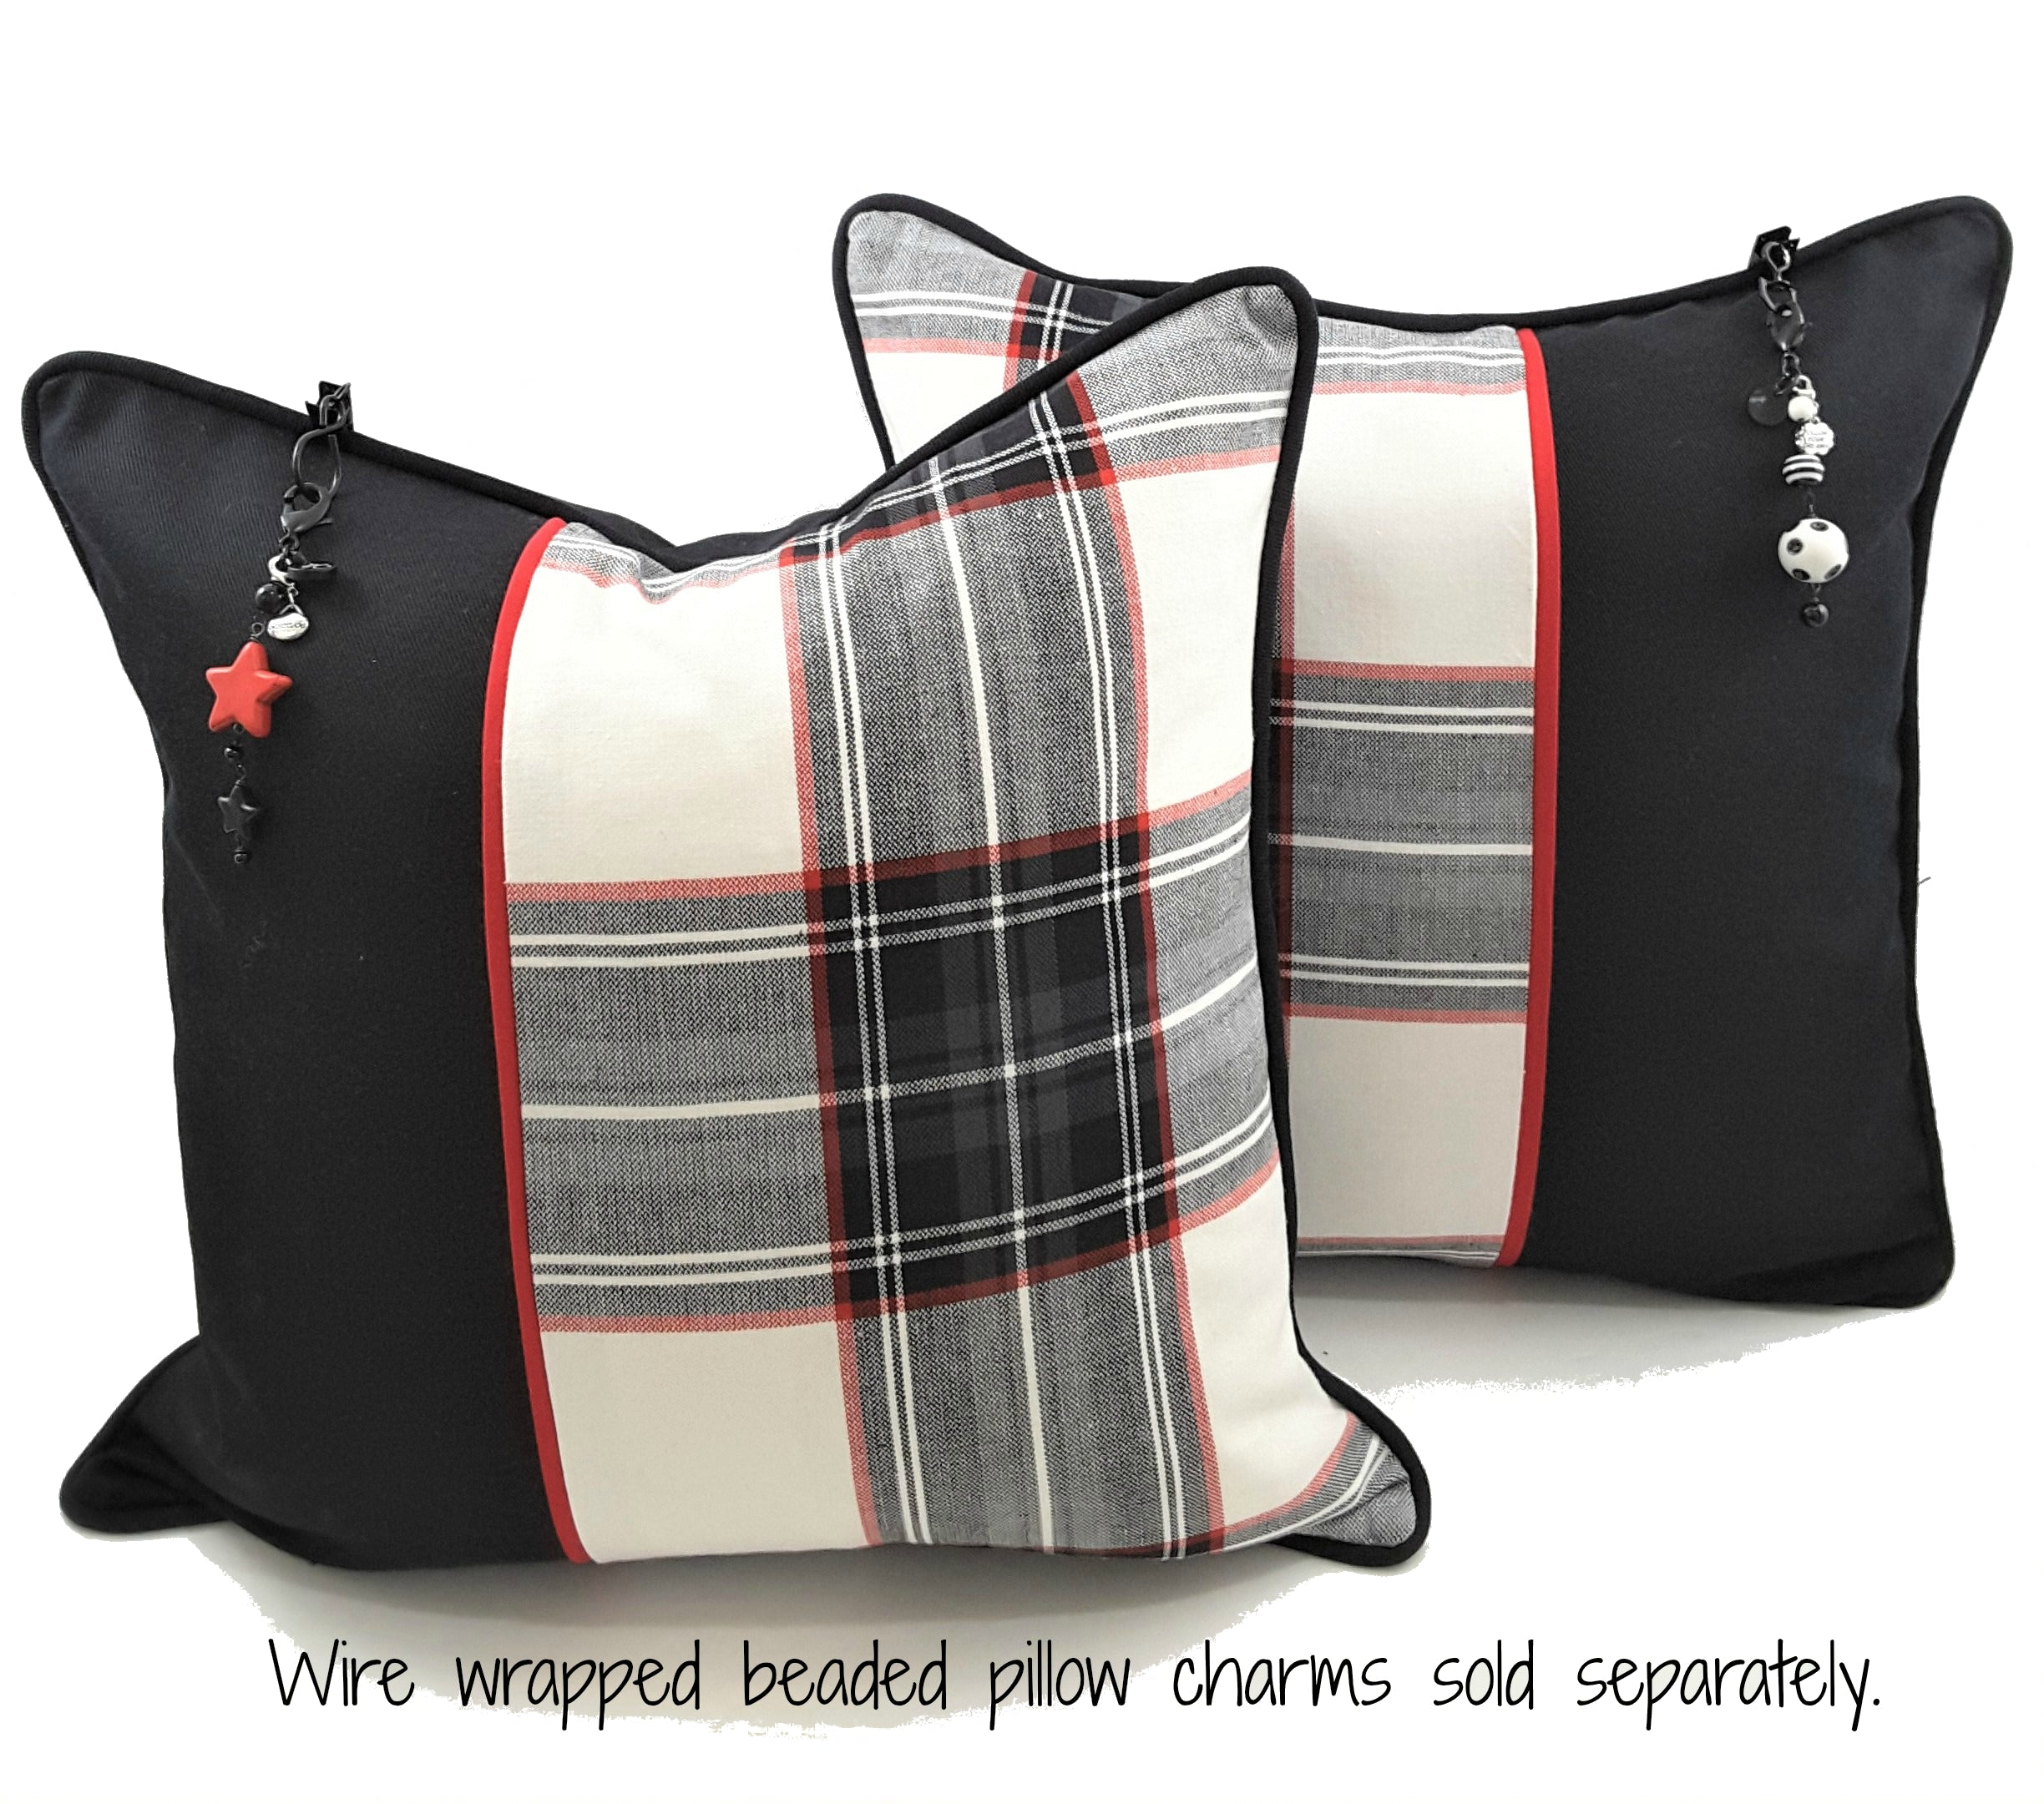 Black/White/Red Plaid Denim Pillow Covers with Charms